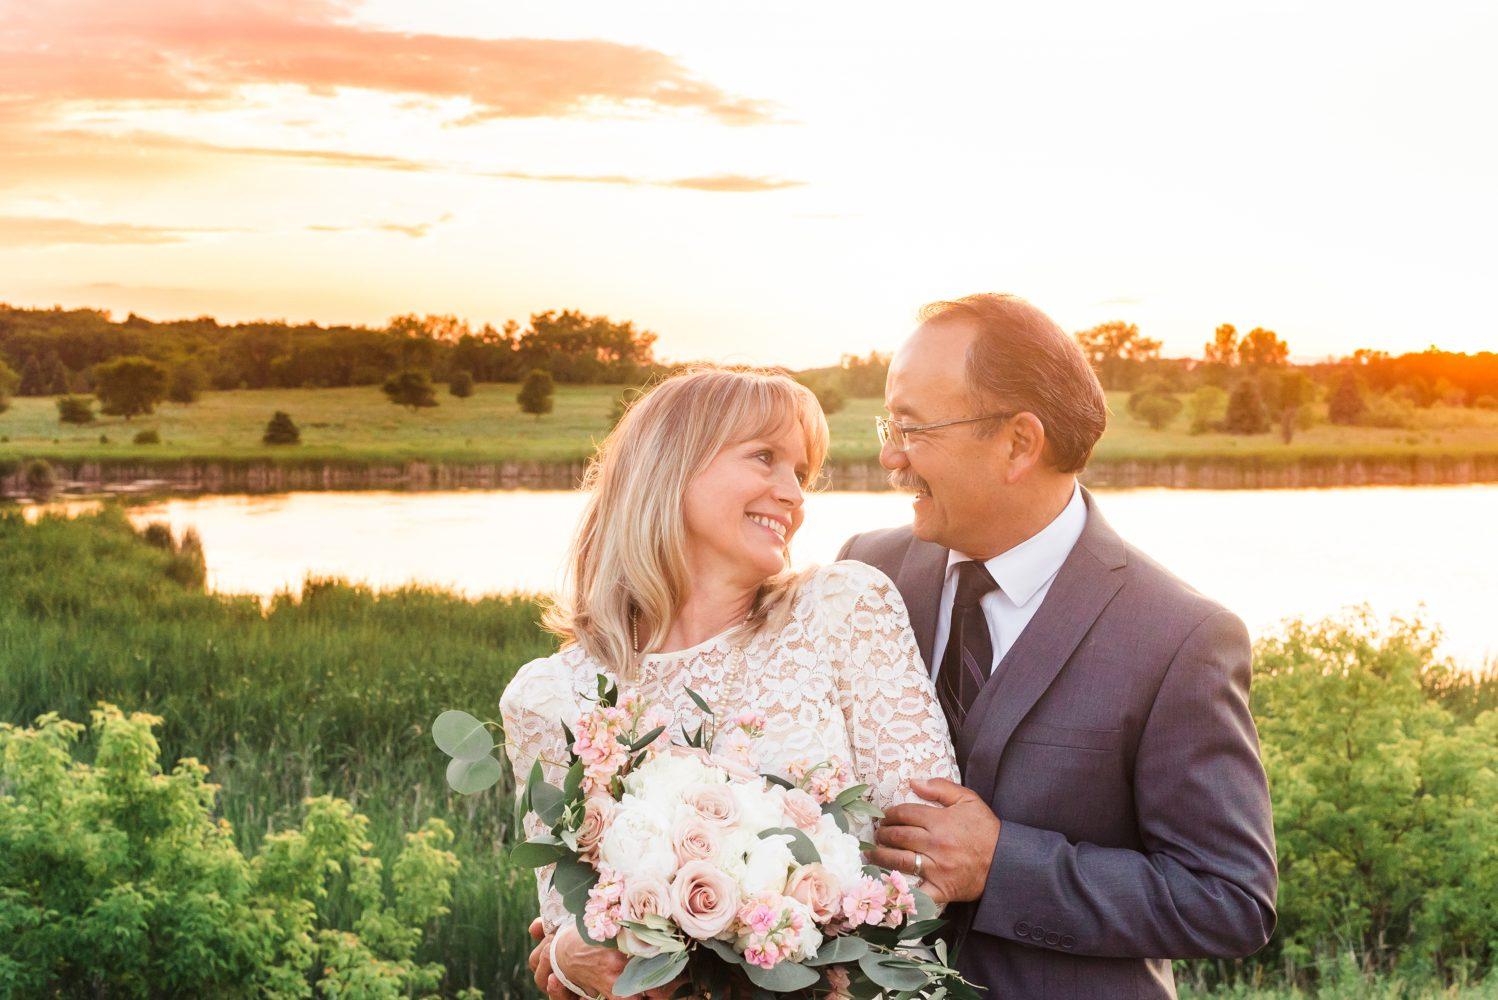 Steve + Bette | Larimore , North Dakota | Renew Community Church